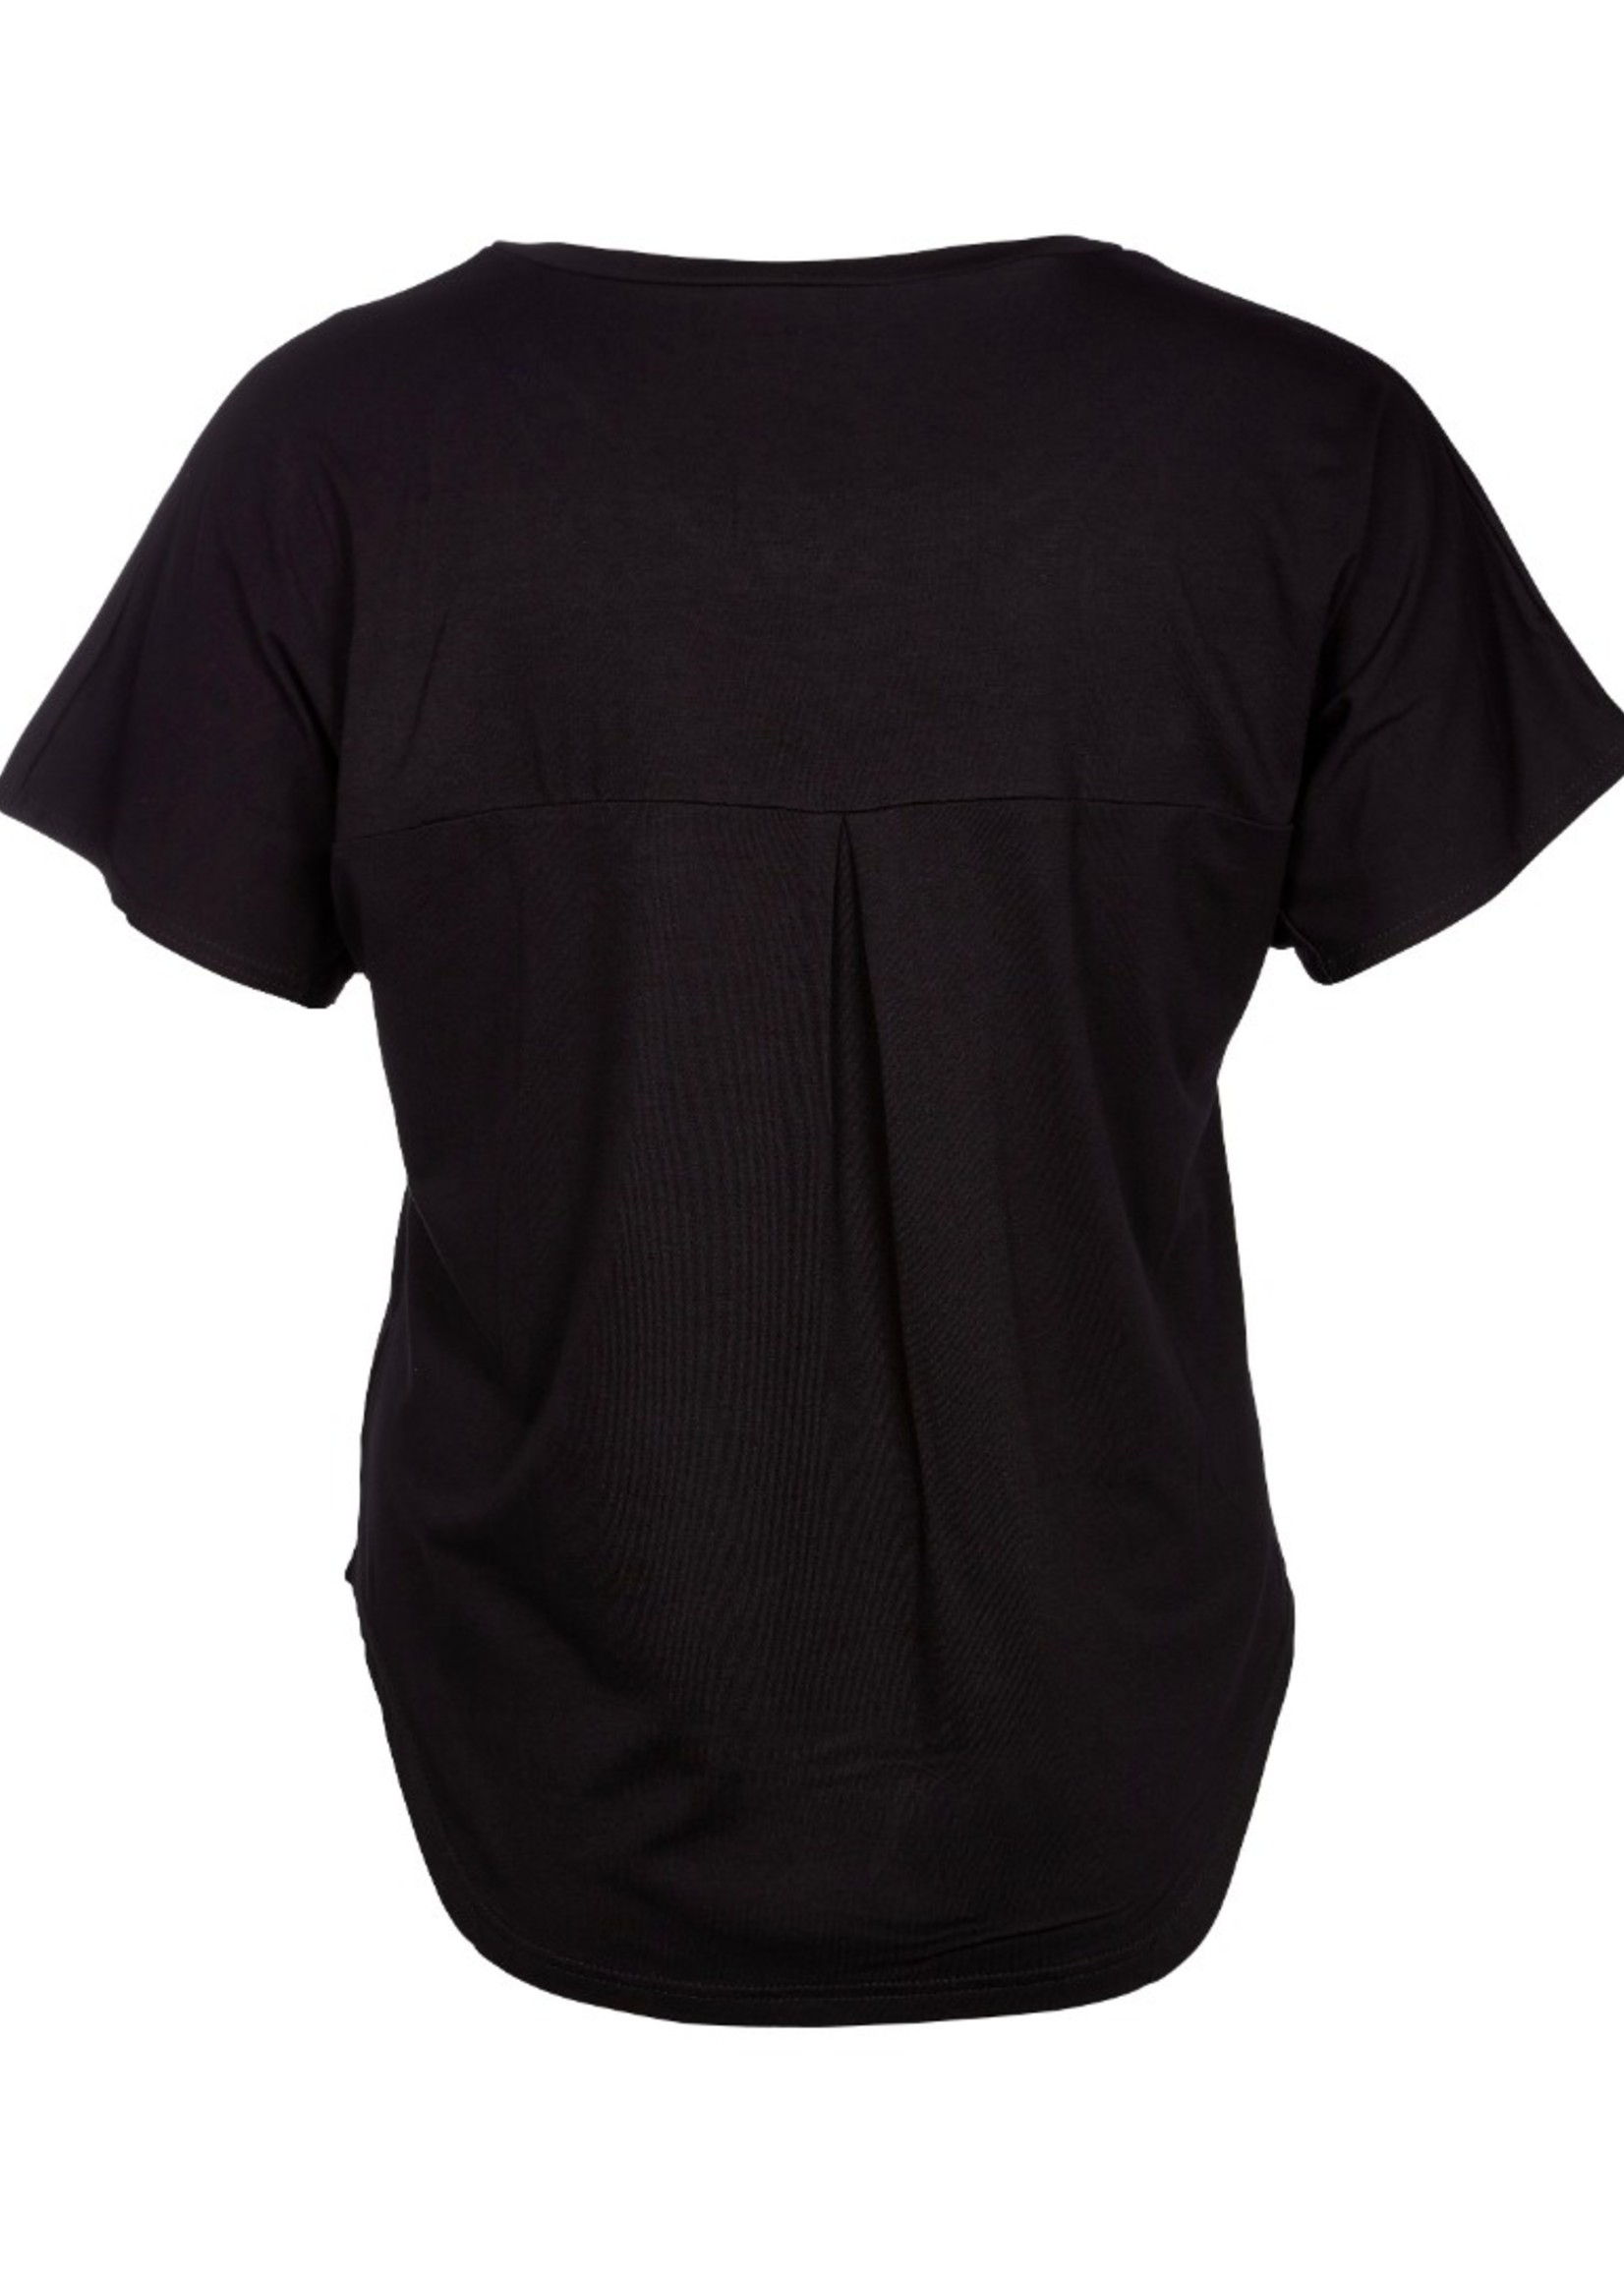 Zoey Zoey Adelaide T-shirt